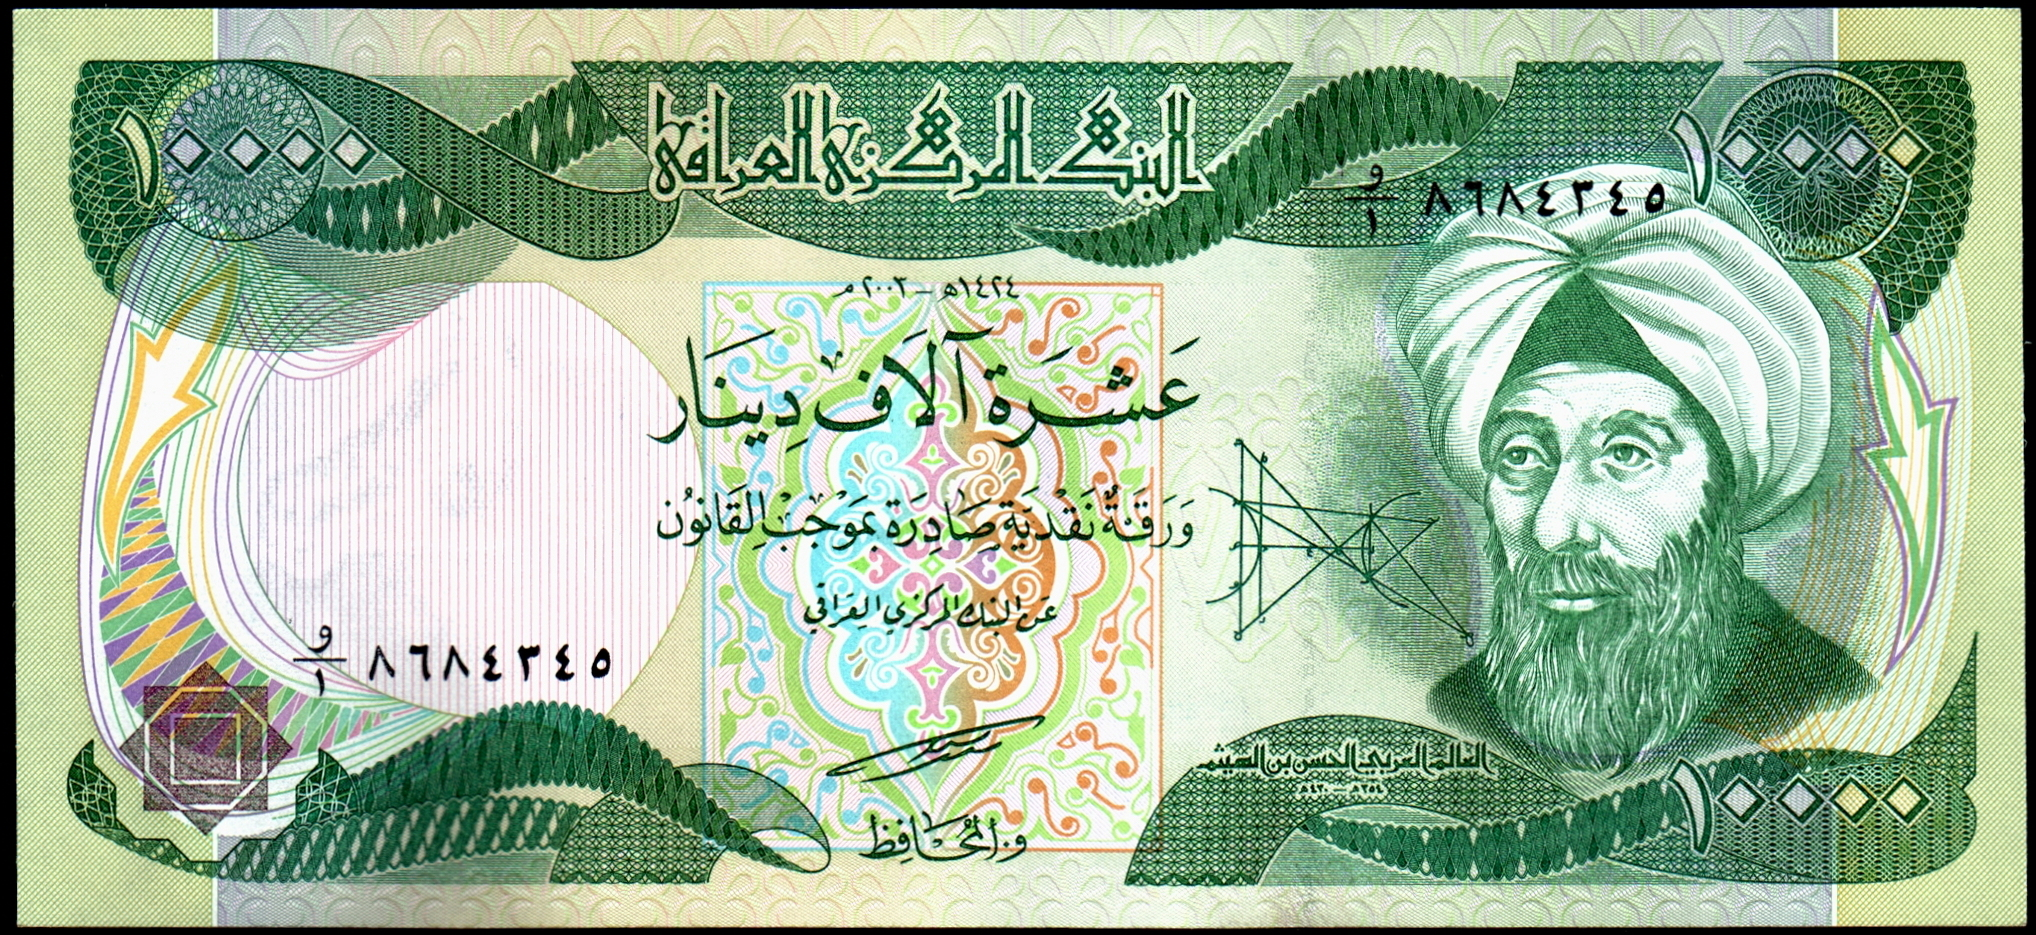 10 000 Dinars 2003 Ah1424 Enlarge Supersize Back